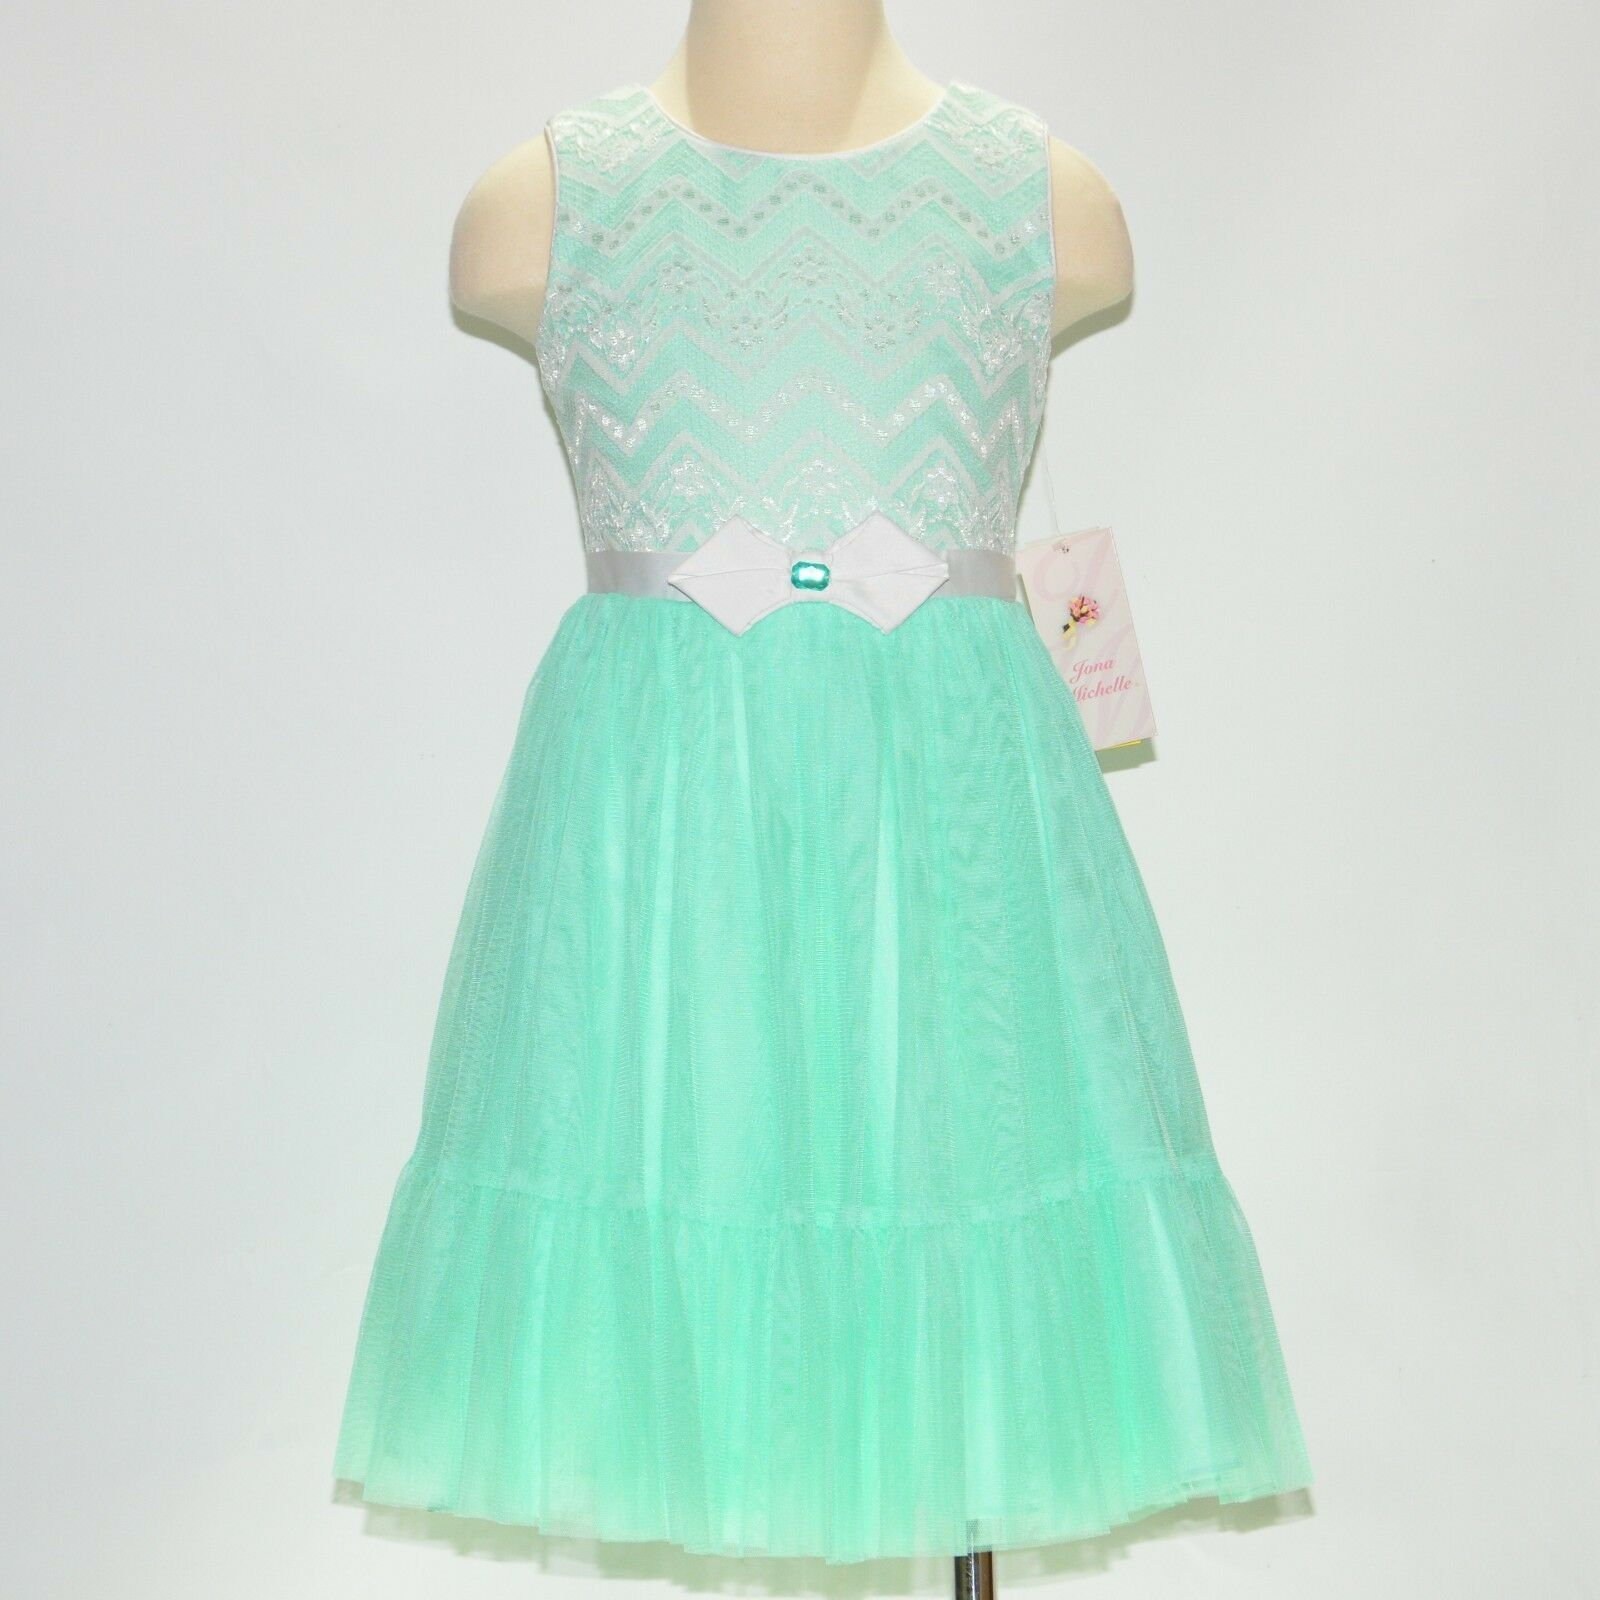 New Jona Michelle Girls Special Occasion Formal Party Holiday Dress Mint Chevron